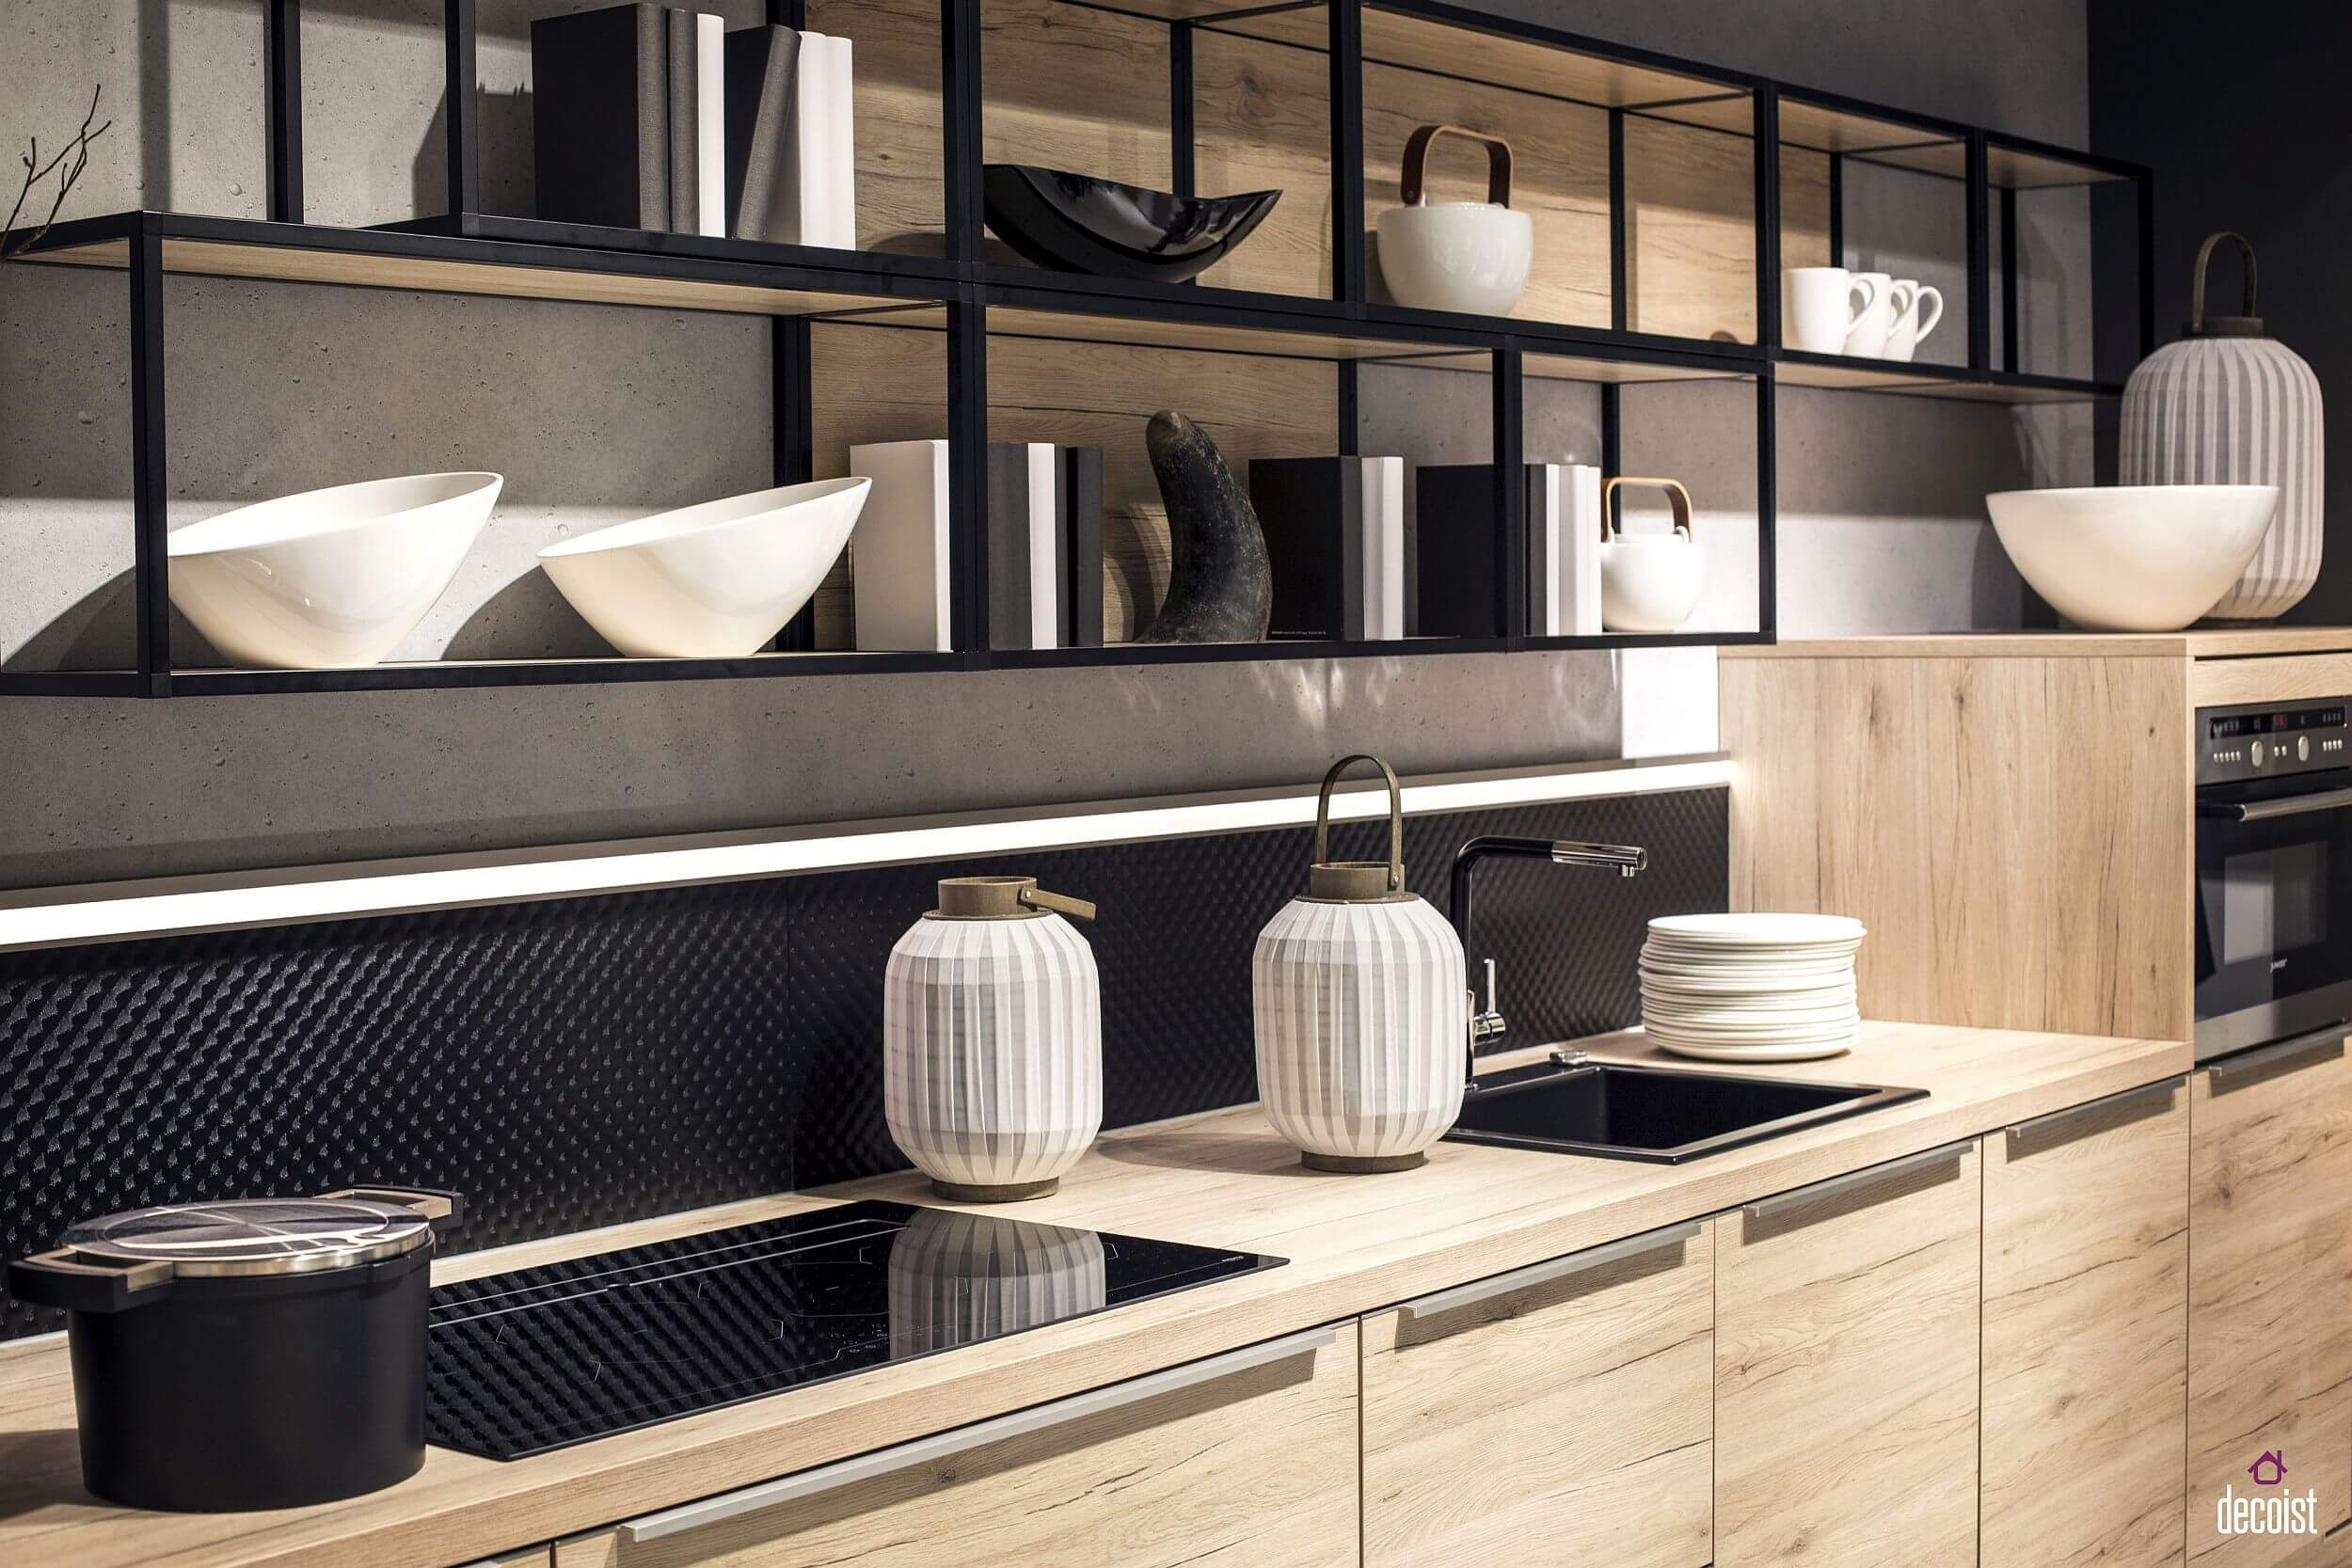 pretty design ideas kitchen shelving ideas.  Best 7 Kitchen Design Ideas For your Home Beautiful